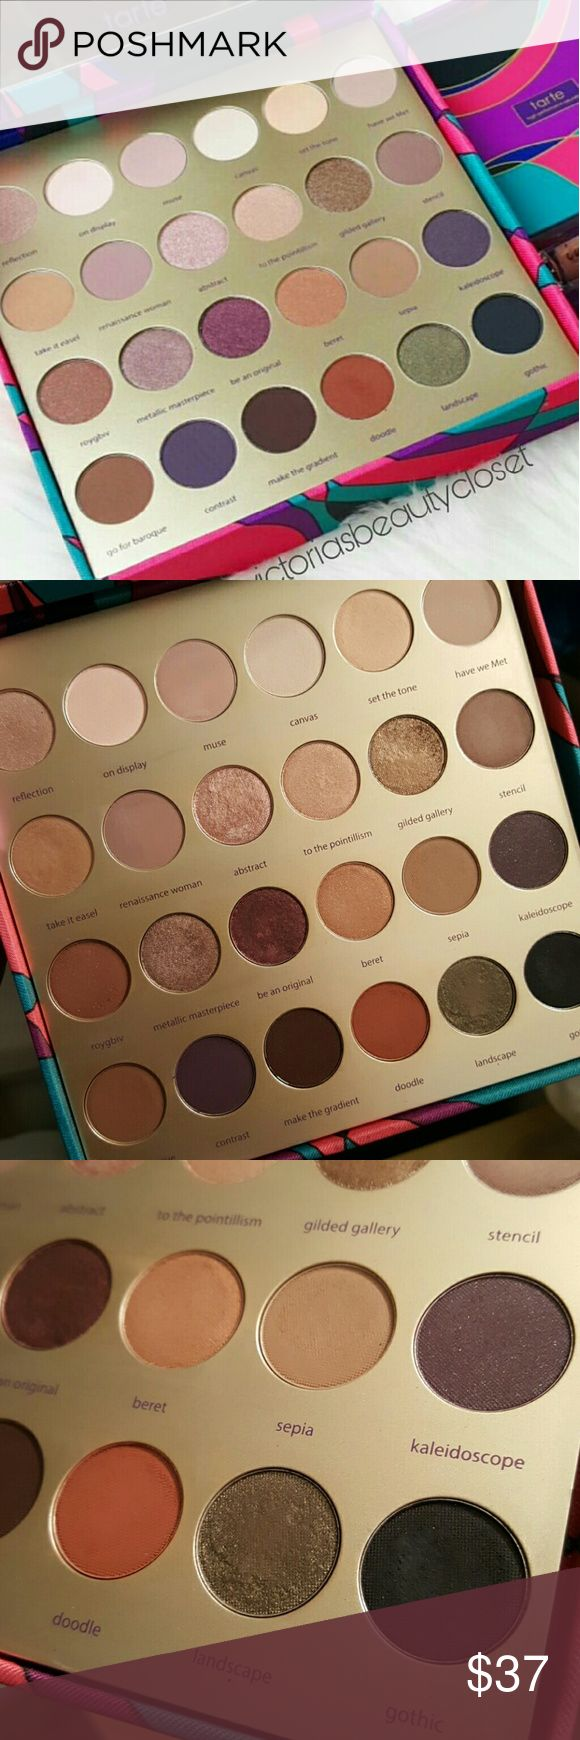 Tarte Holiday Collection eye shadow palette Used twice /all eyeshadows but 1 or 2 have been swatched Just dont reach for it as much Part of tarte's 2016 Holiday Collection Does NOT INCLUDE the rest of the kit Eyeshadows only Mix of mattes & mattallics Has streaks on gold part from me trying to clean it Has a side slot to store lipstick, brushes, etc OFFERS WELCOME tarte Makeup Eyeshadow